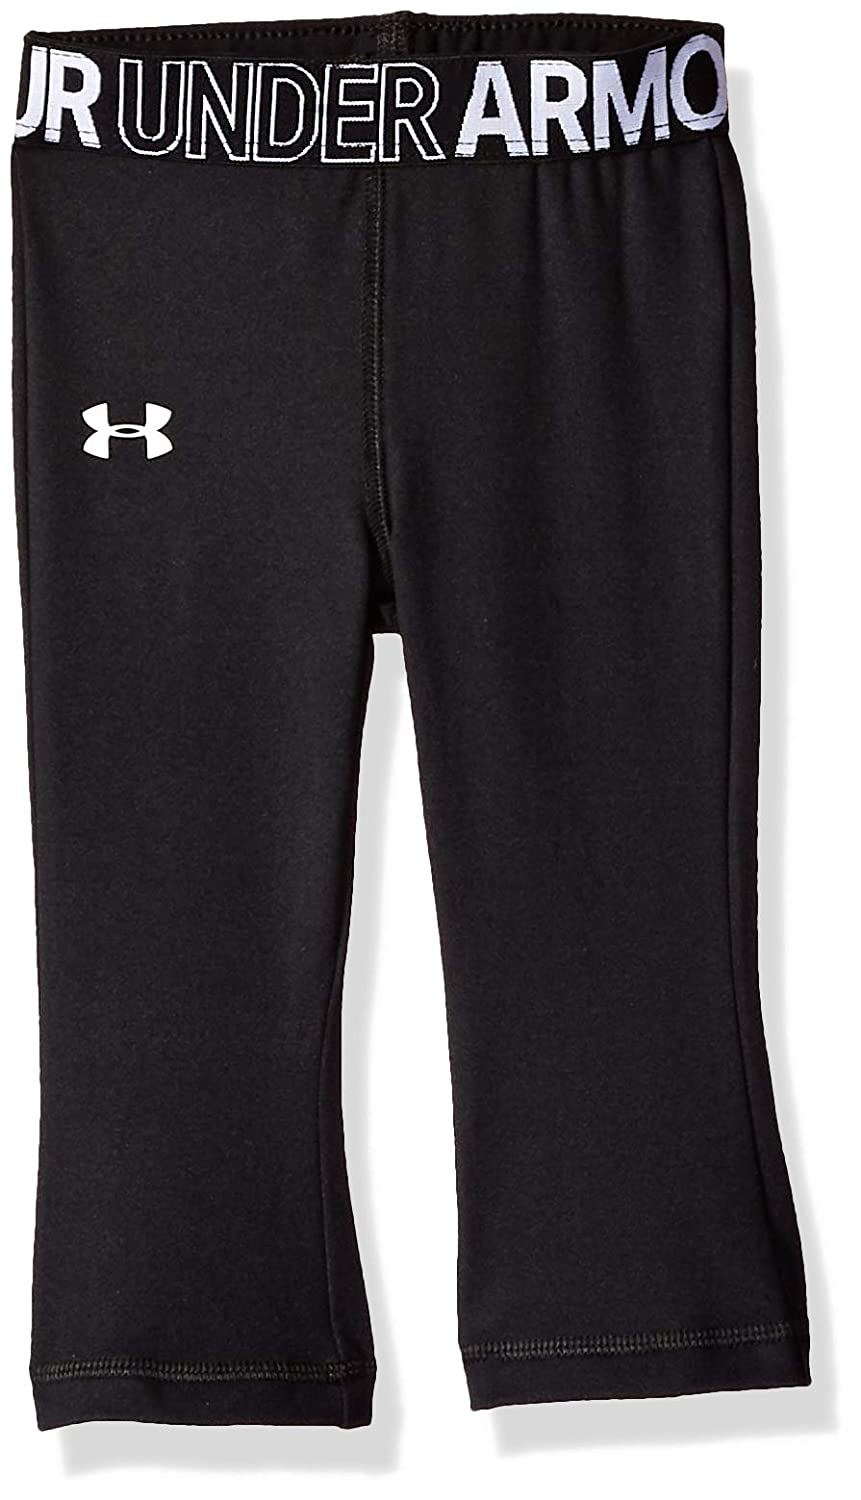 3d735025c0 Under Armour Girls' Yoga Pant